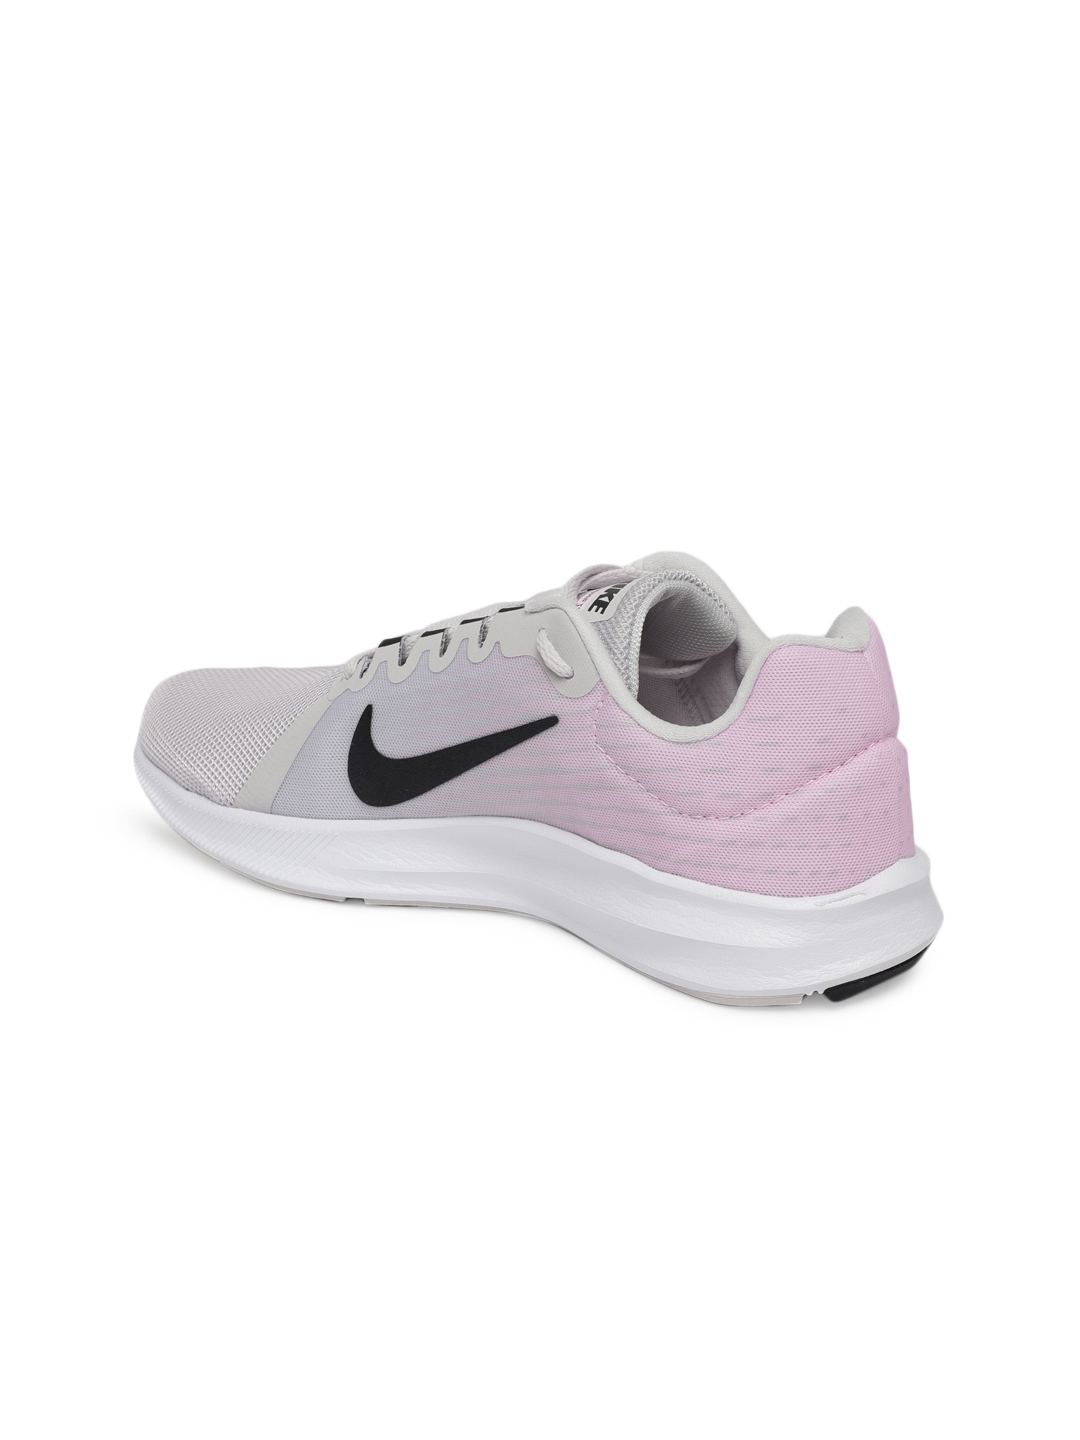 fd364d52fba8c Buy Nike Women Grey   Off White Downshifter 8 Running Shoes - Sports ...